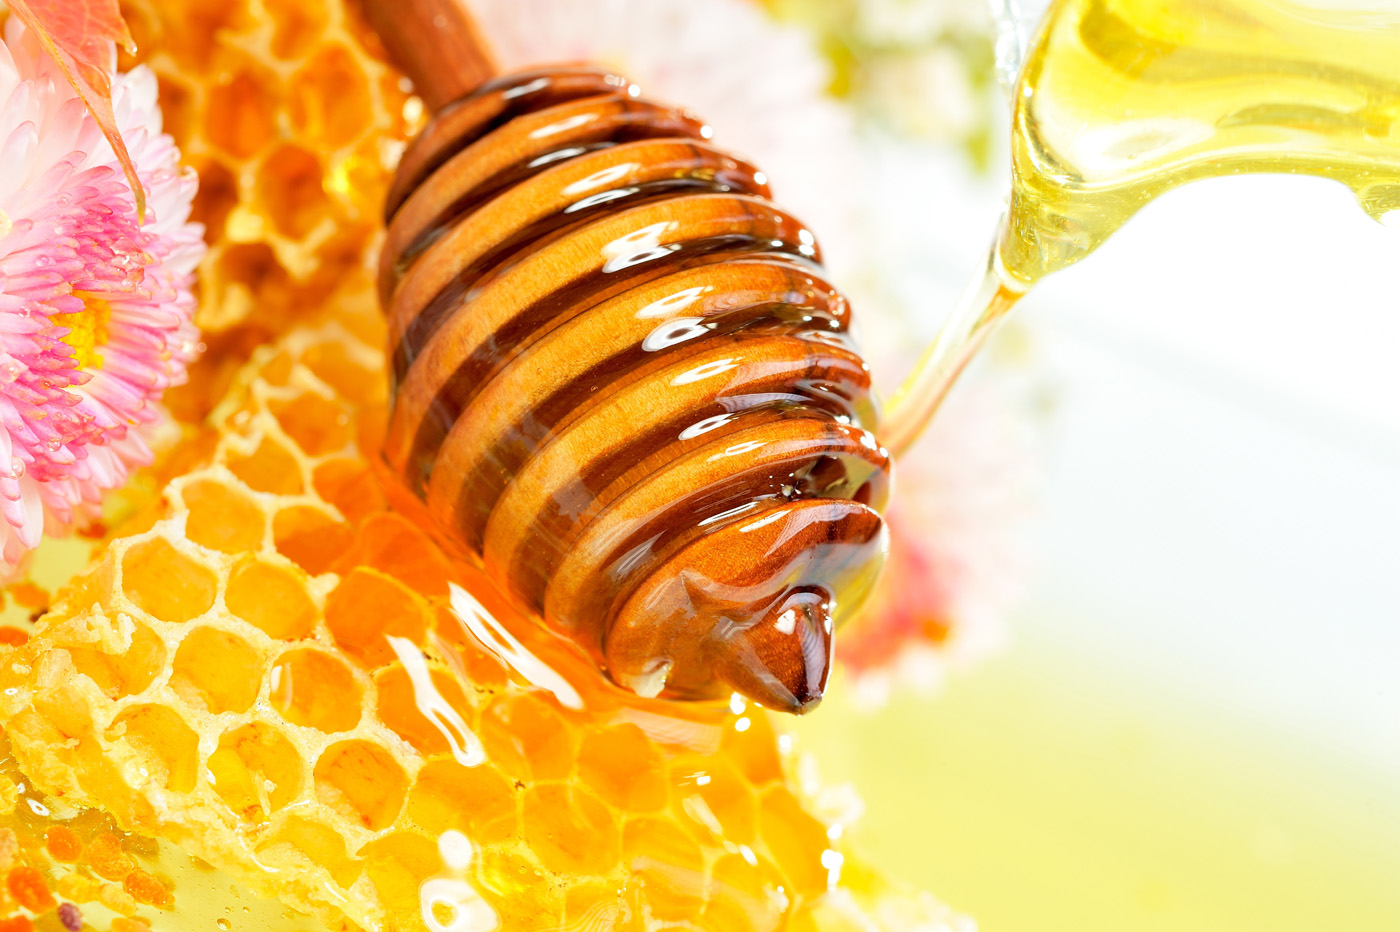 Pictures of liquid honey and the honeycomb 3637